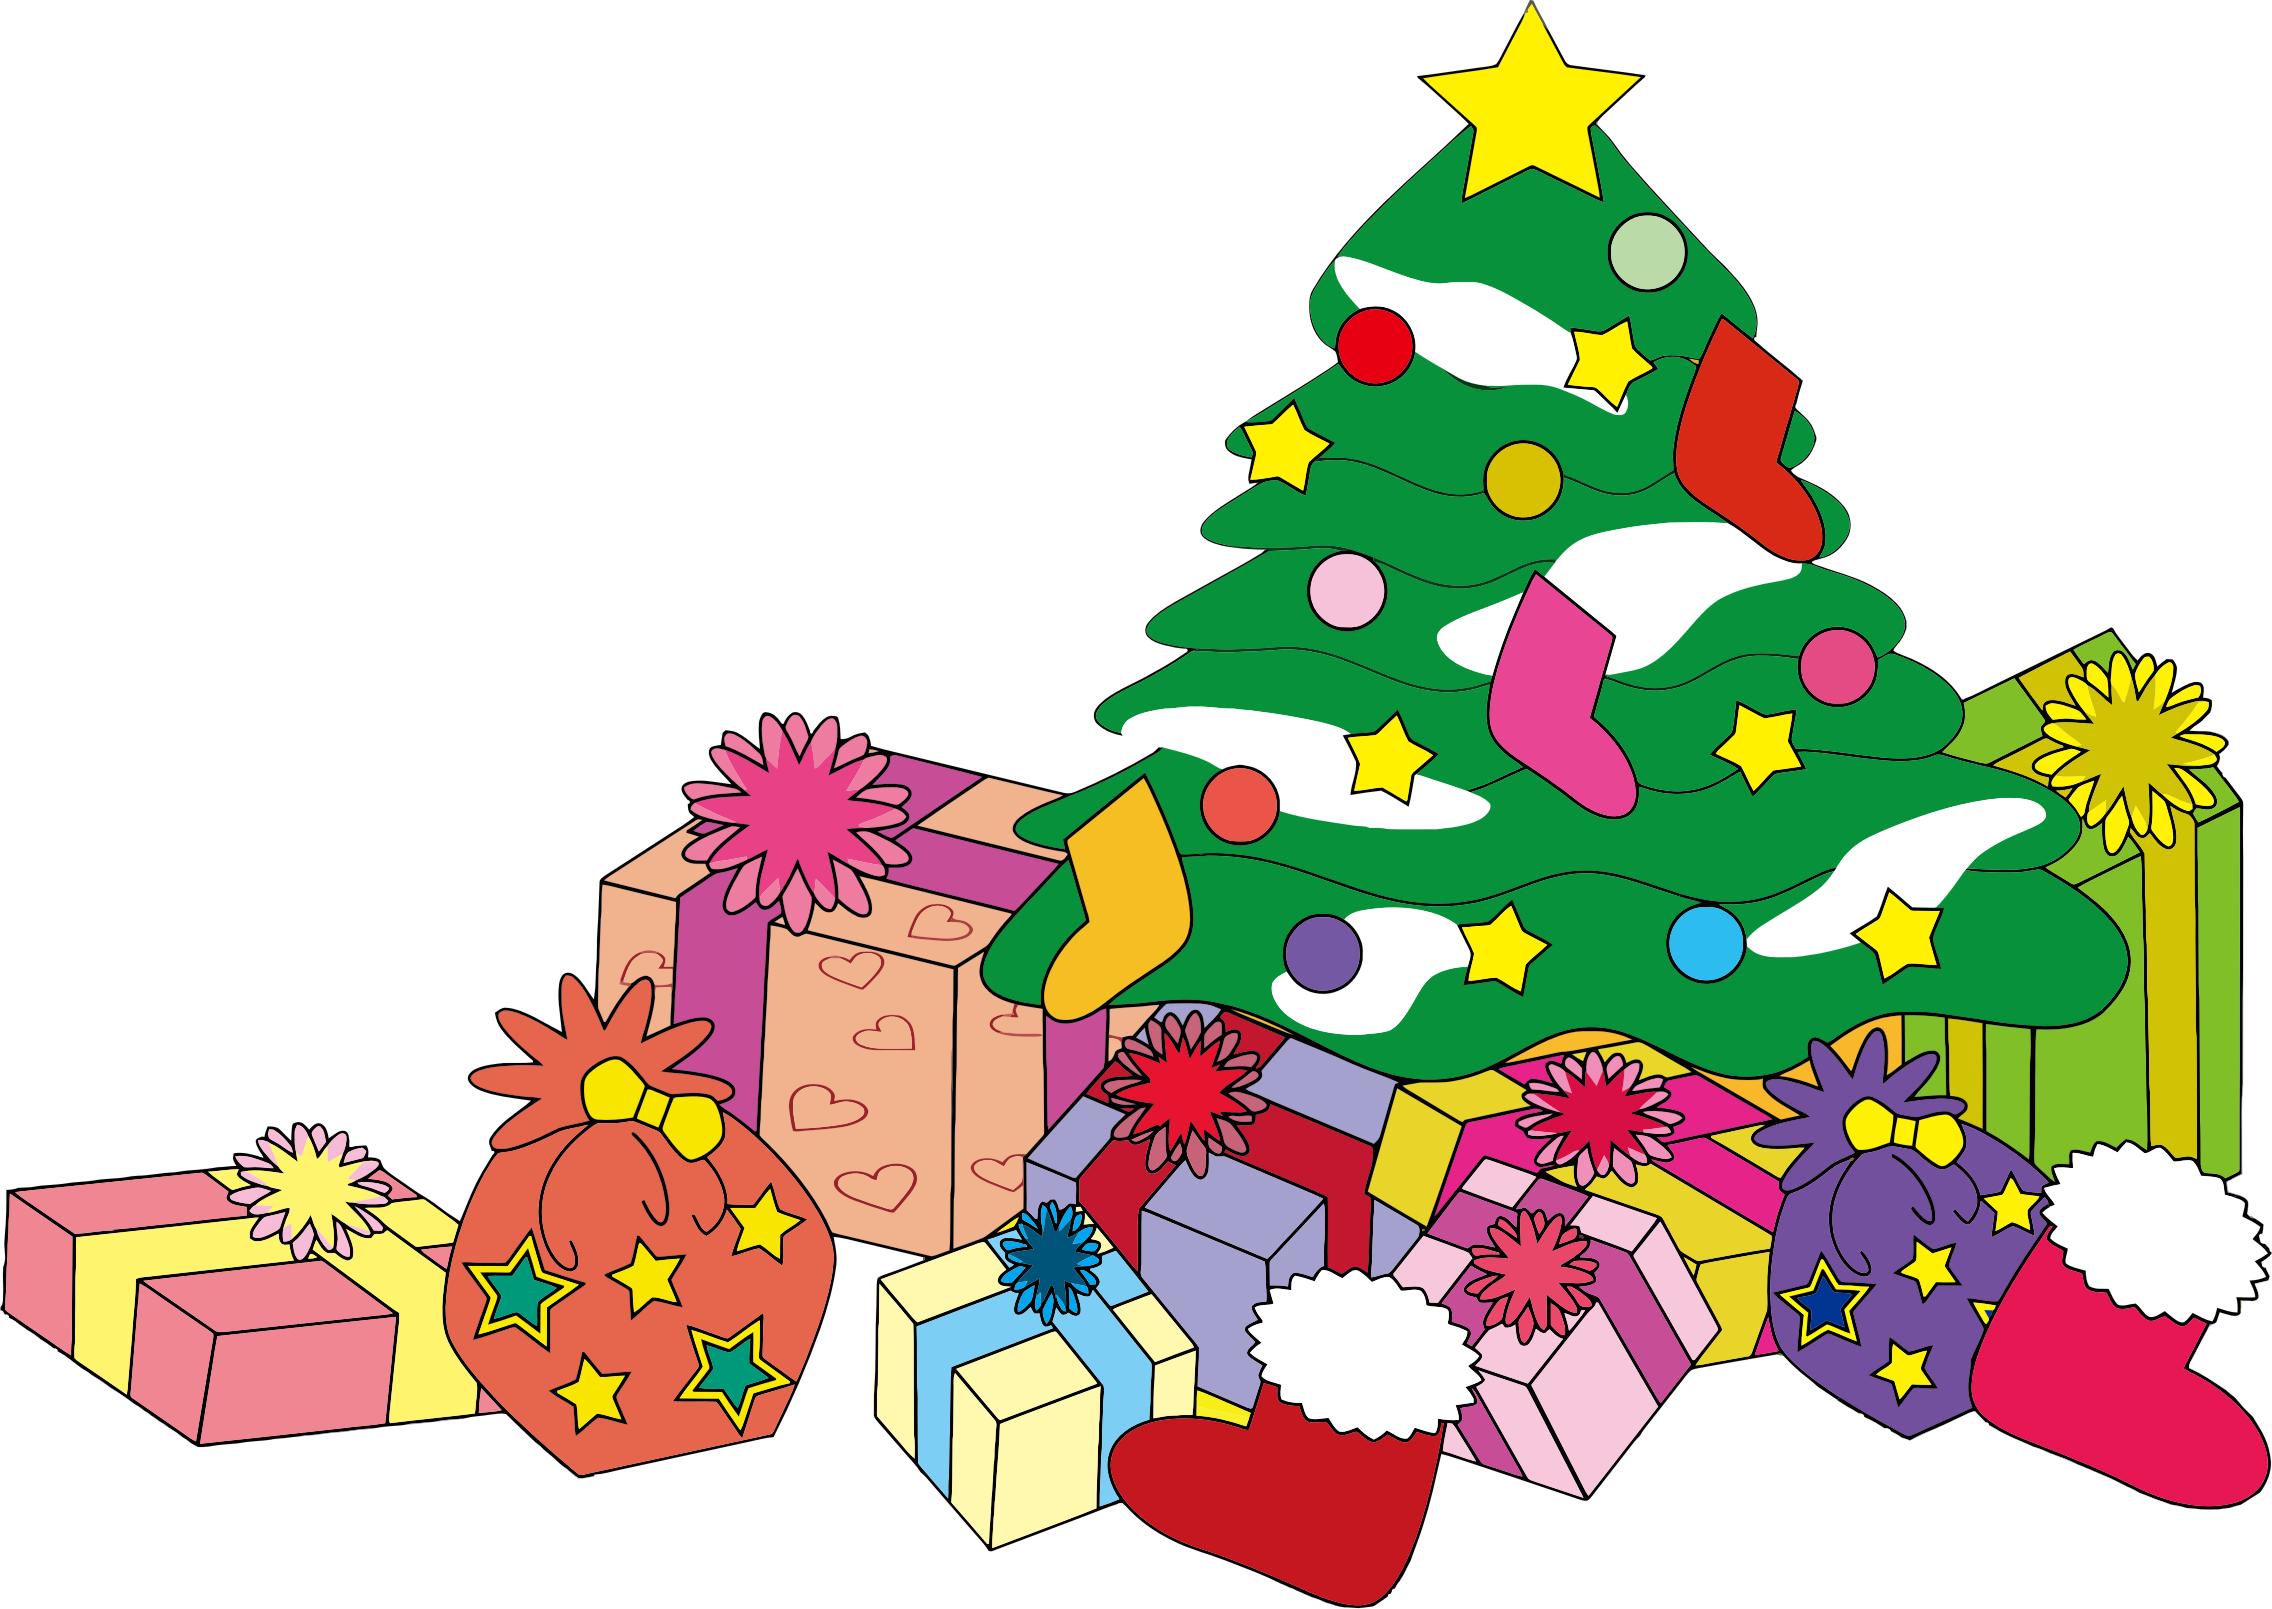 Christmas Tree And Presents Illustration by GDJ